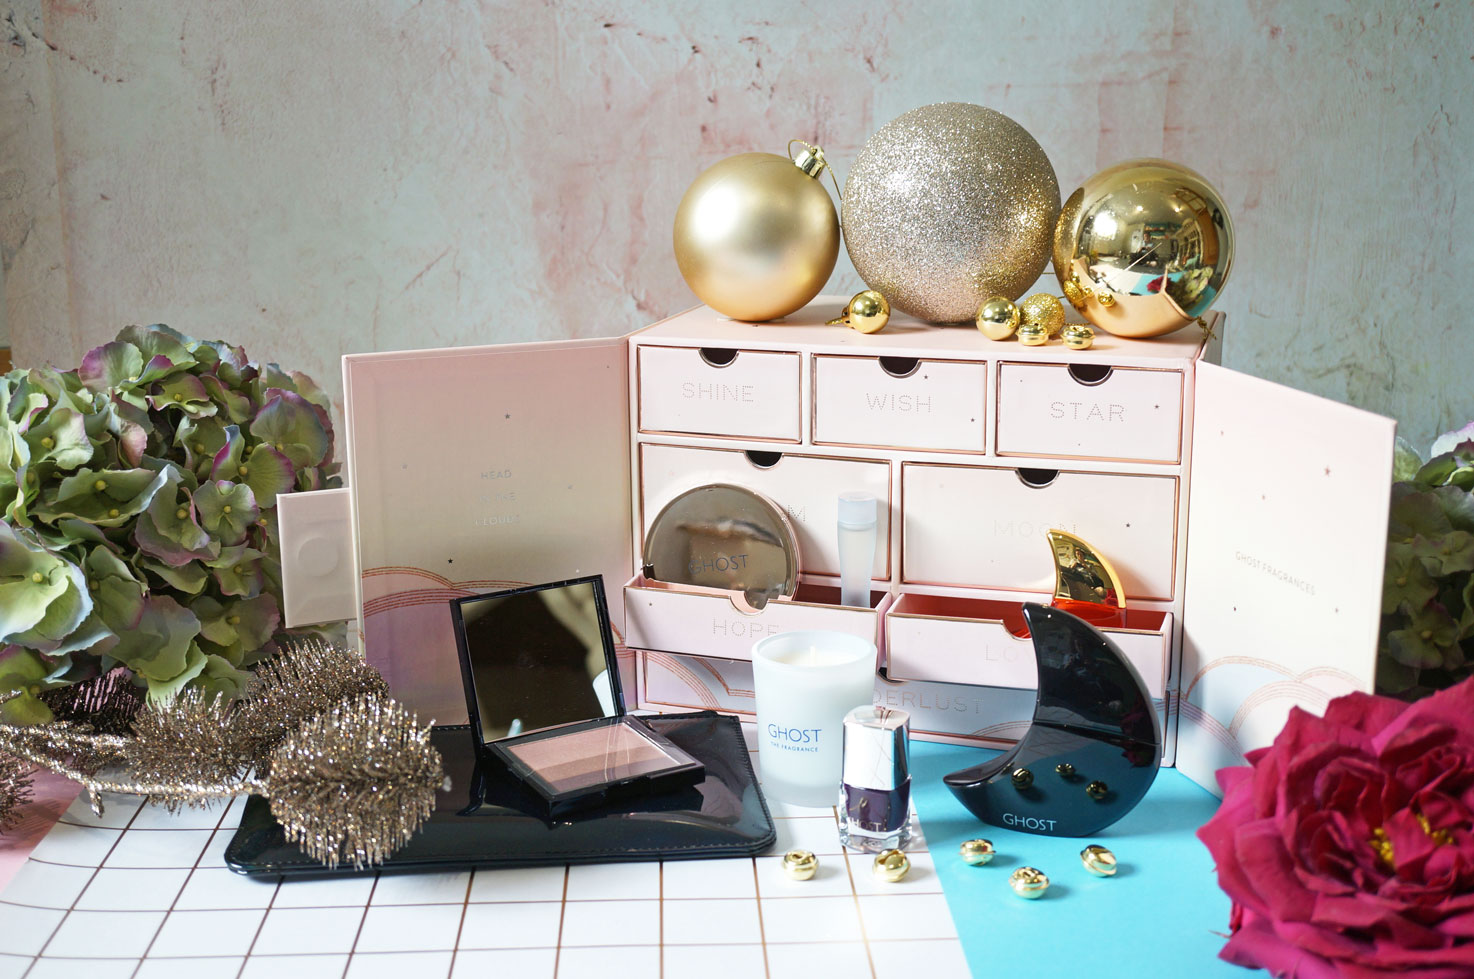 Christmas: The Ghost Fragrance Beauty Collection Gift Set